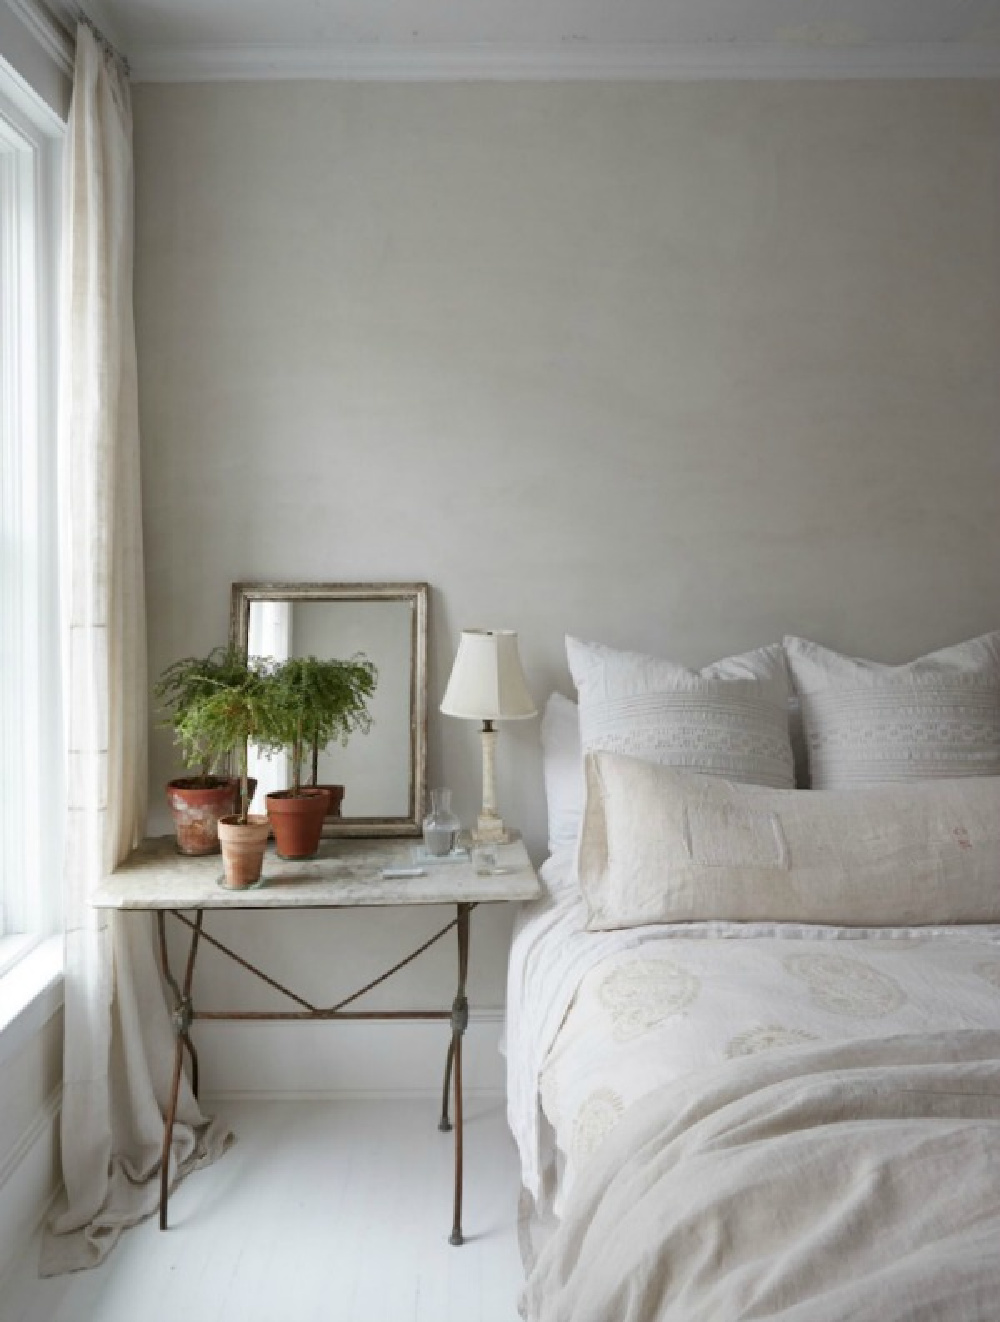 Serene bedroom with European rustic elegance looks as though it might be in the South of France, not New York...see more lovely examples of European farmhouse decor you can bring to your own spaces at home. #Europeanfarmhouse #elegantdecor #countrystyle